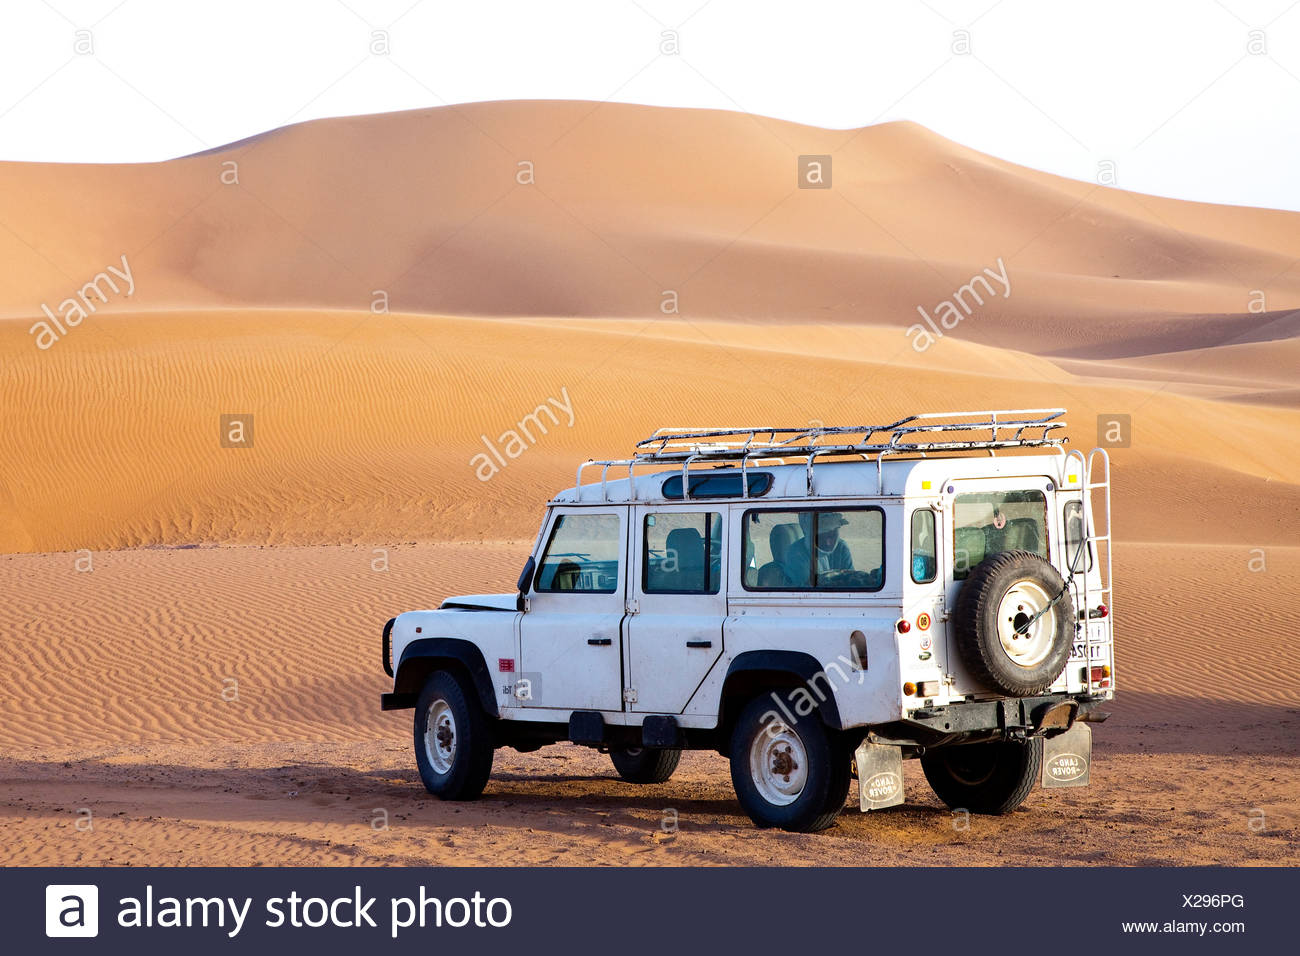 All-terrain vehicle, Land Rover Defender, sand dunes of Erg Chegaga, Sahara Desert near Mhamid, Morocco, Africa - Stock Image